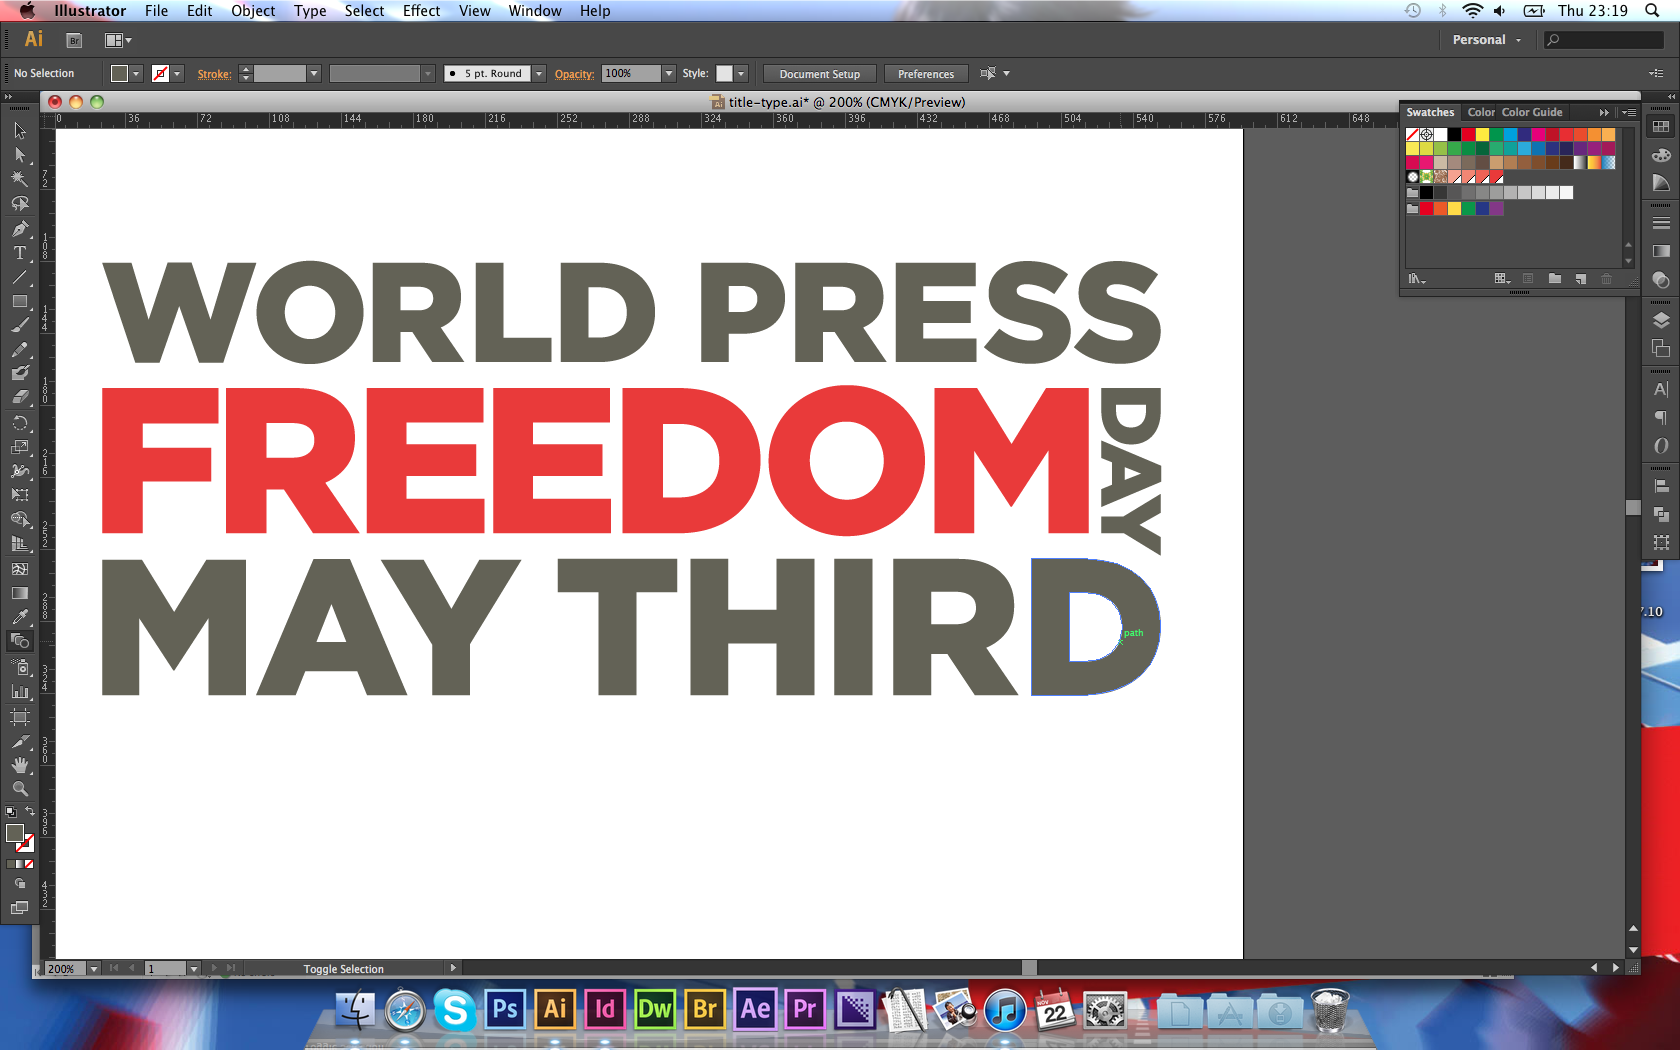 [05] Playing with type for my print sides title. The gap